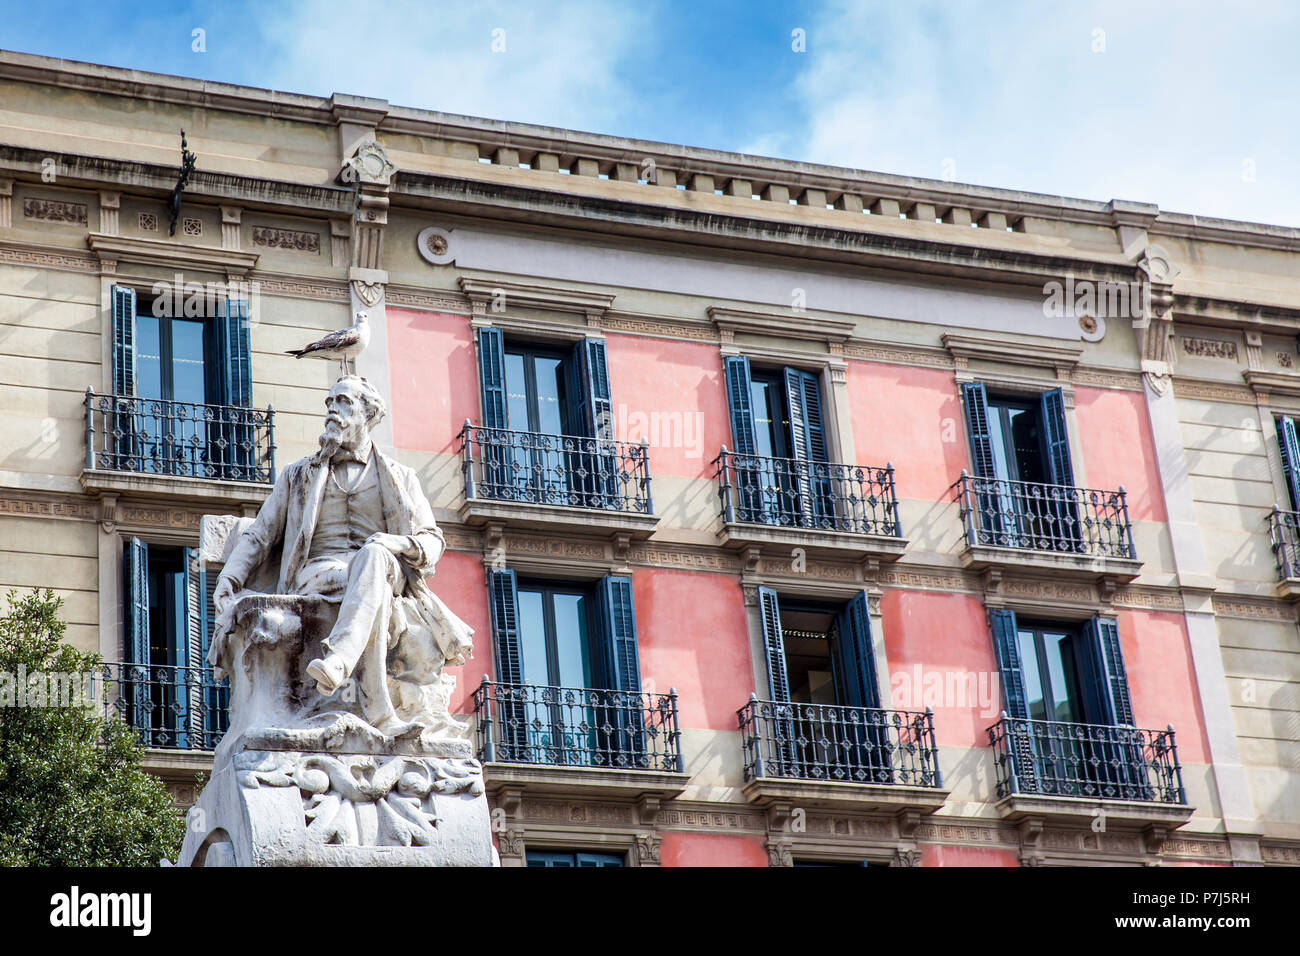 Monument to the dramaturge Frederic Soler located in the Theater Square in Barcelona Spain Stock Photo